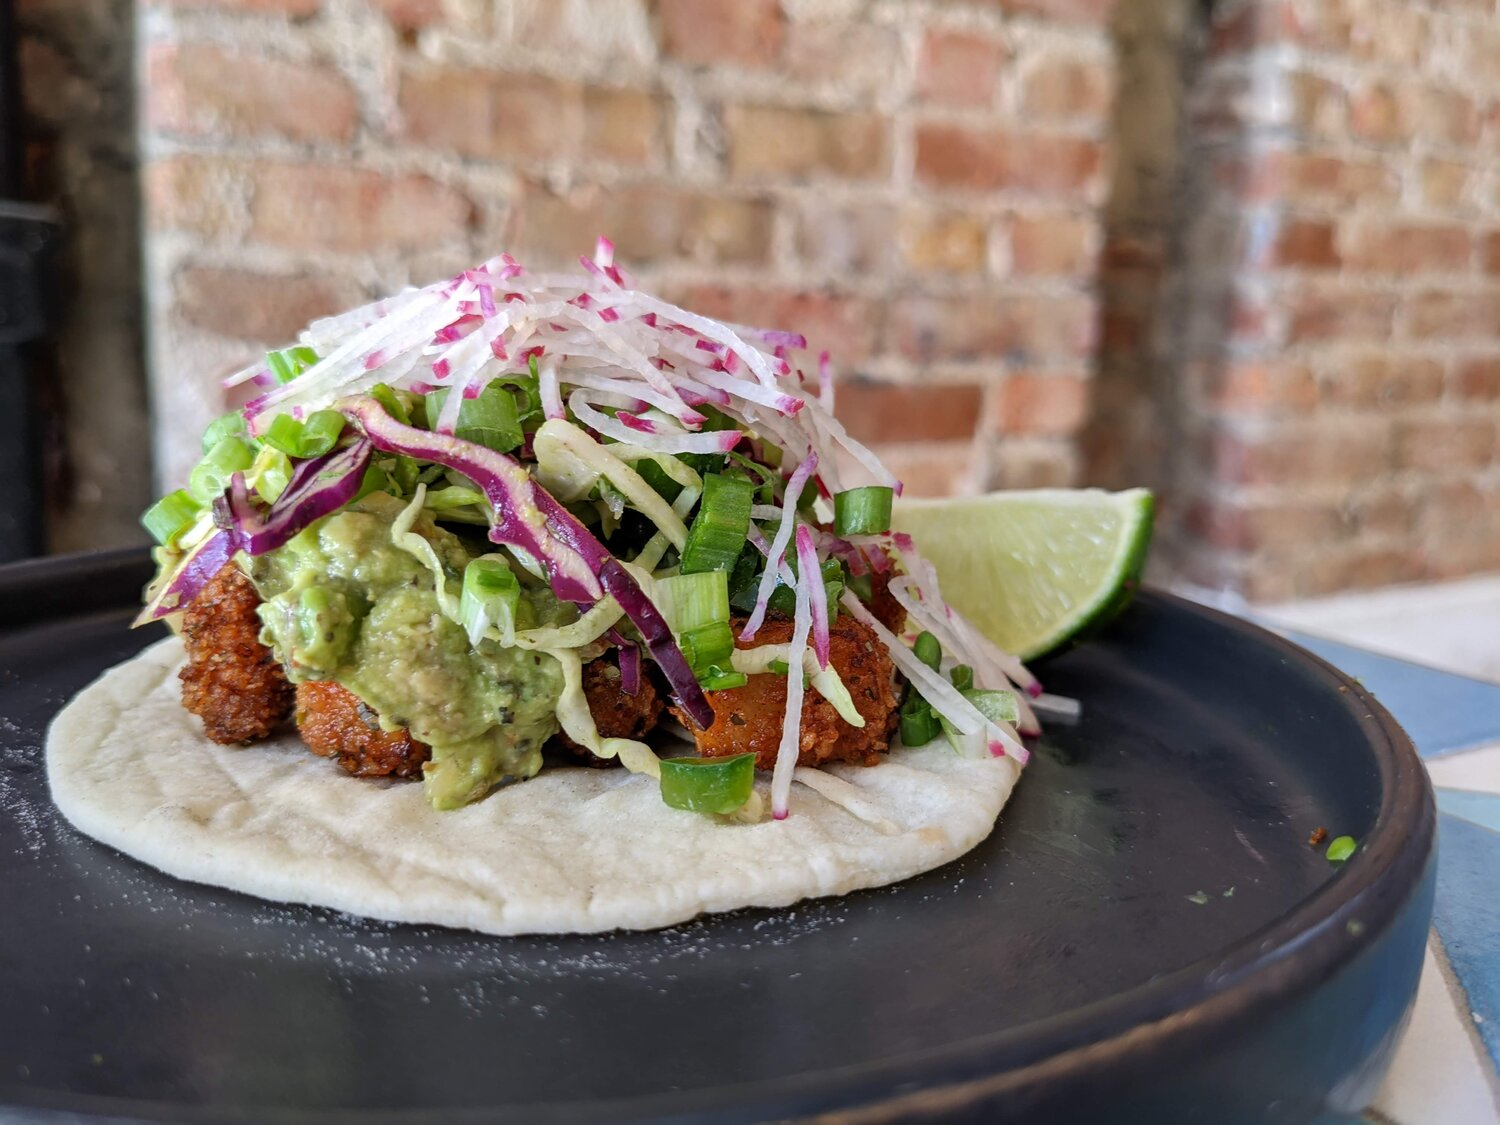 Taqueria de Beirut plays with Mexican and Lebanese flavors.